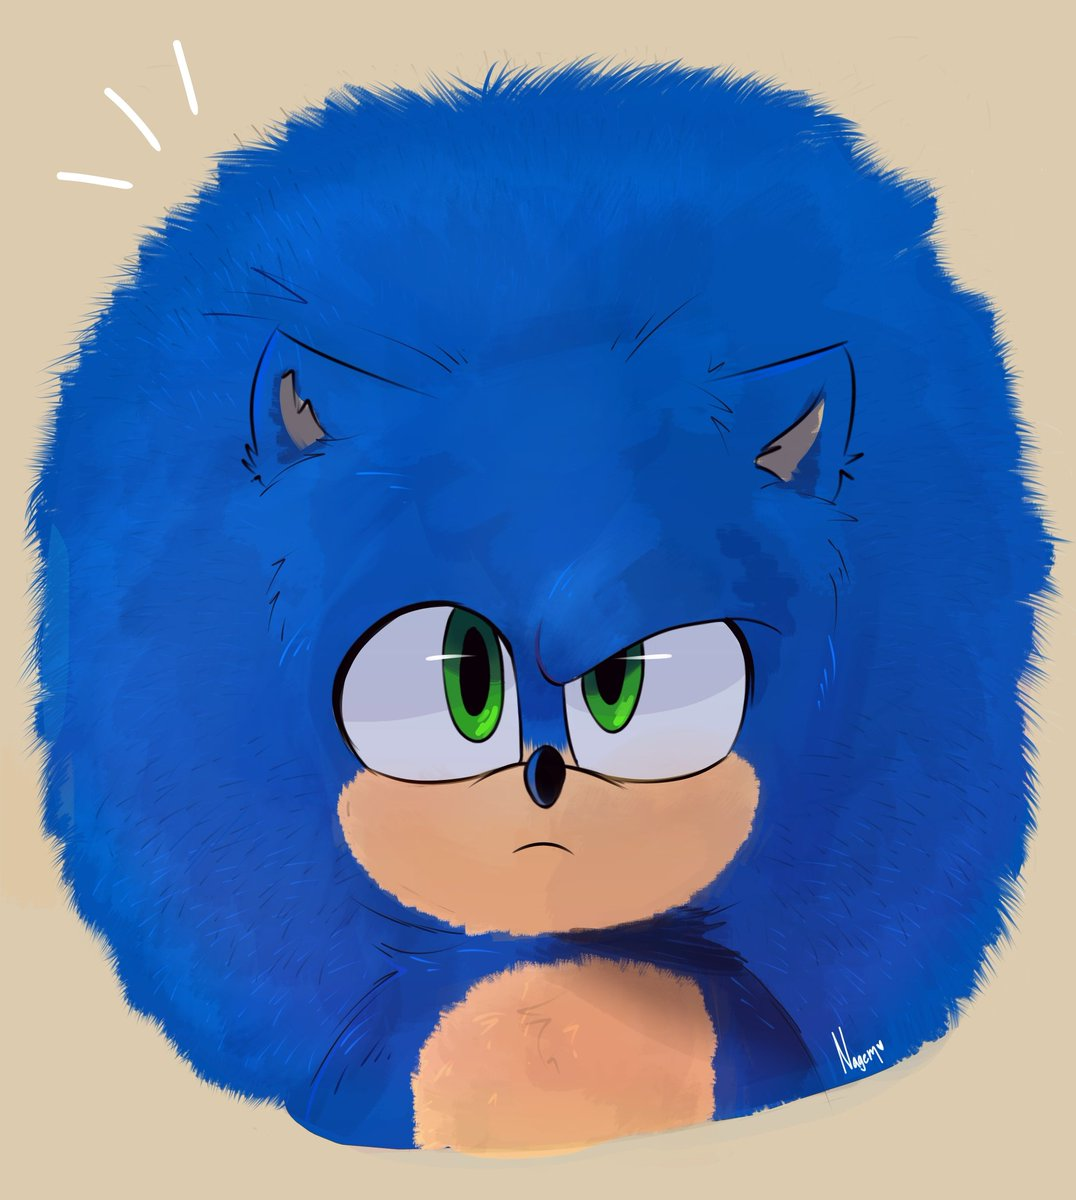 Fluffy Sonic is really cute! I want to hug him 💙